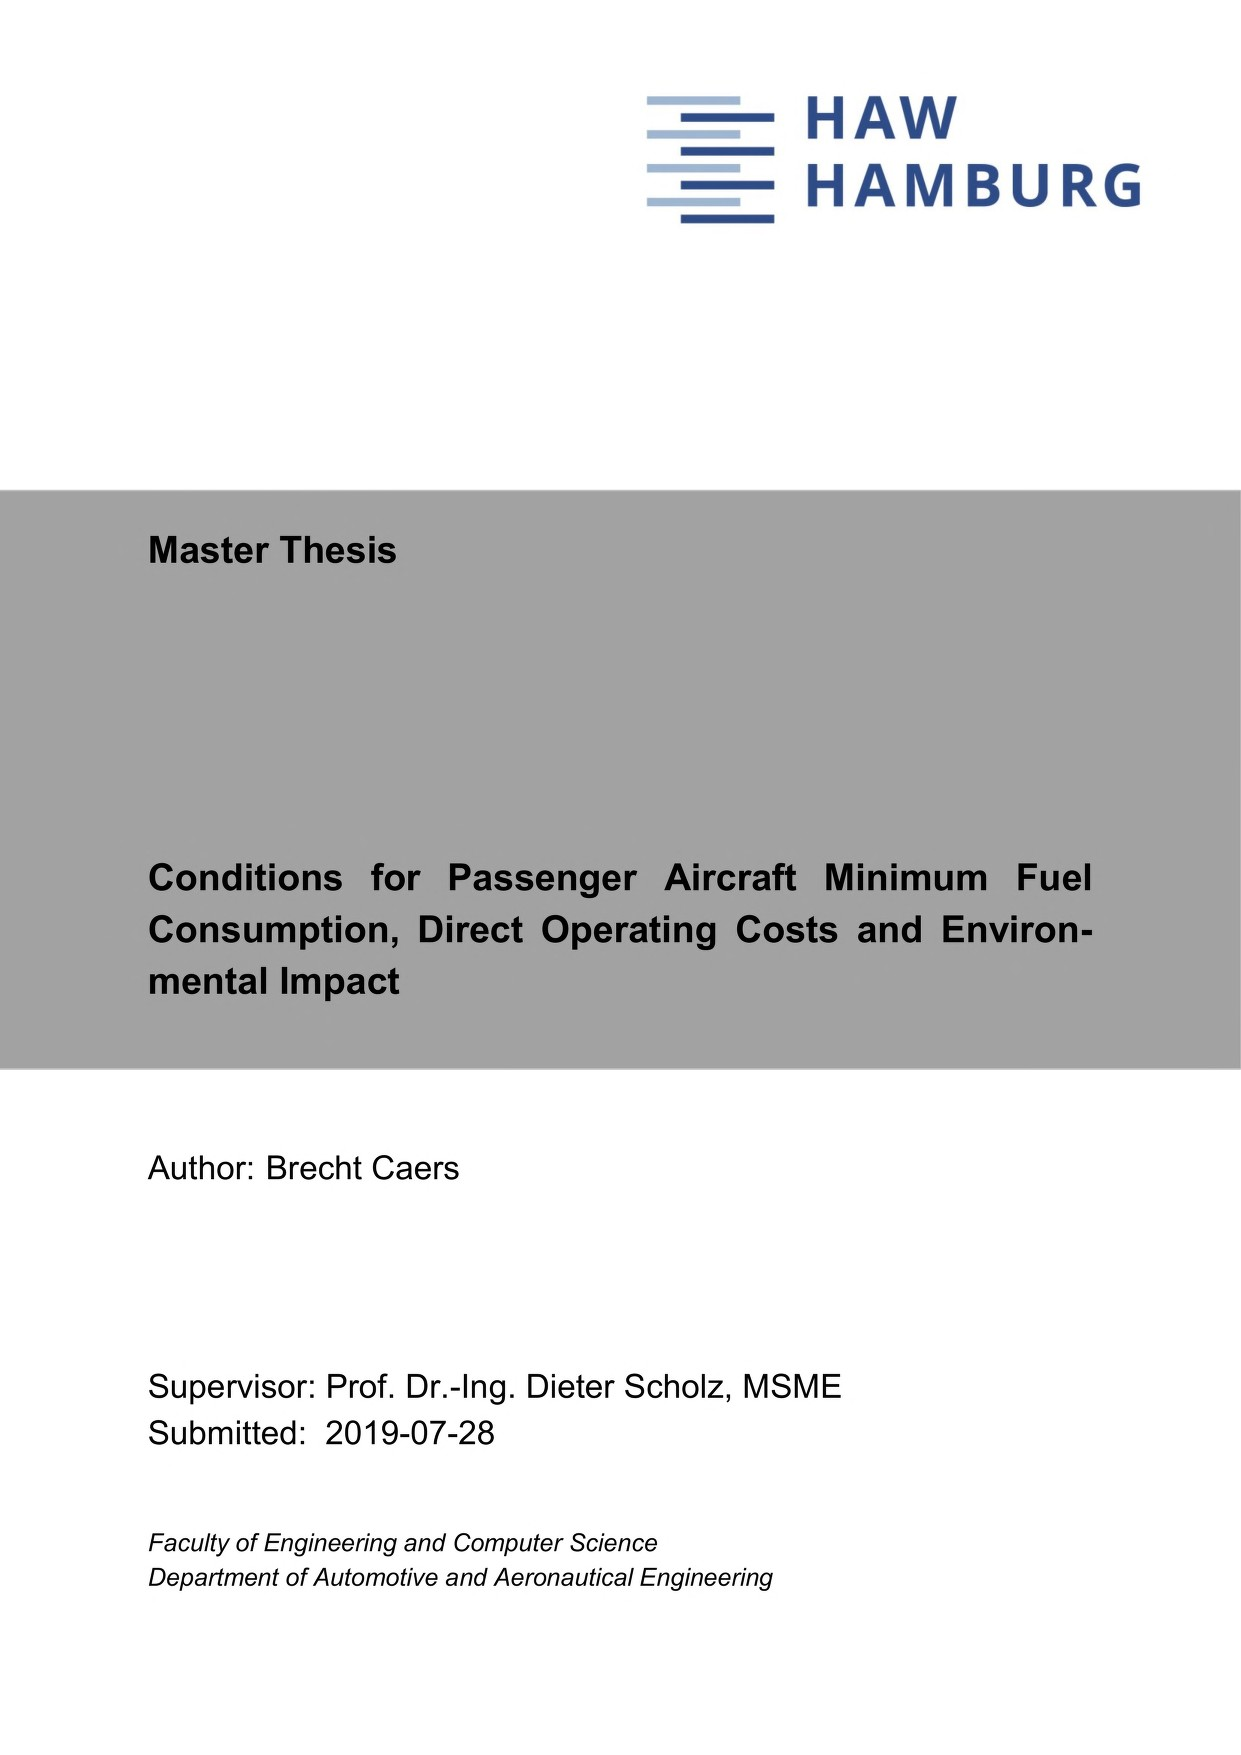 Thumbnail image of Conditions for Passenger Aircraft Minimum Fuel...